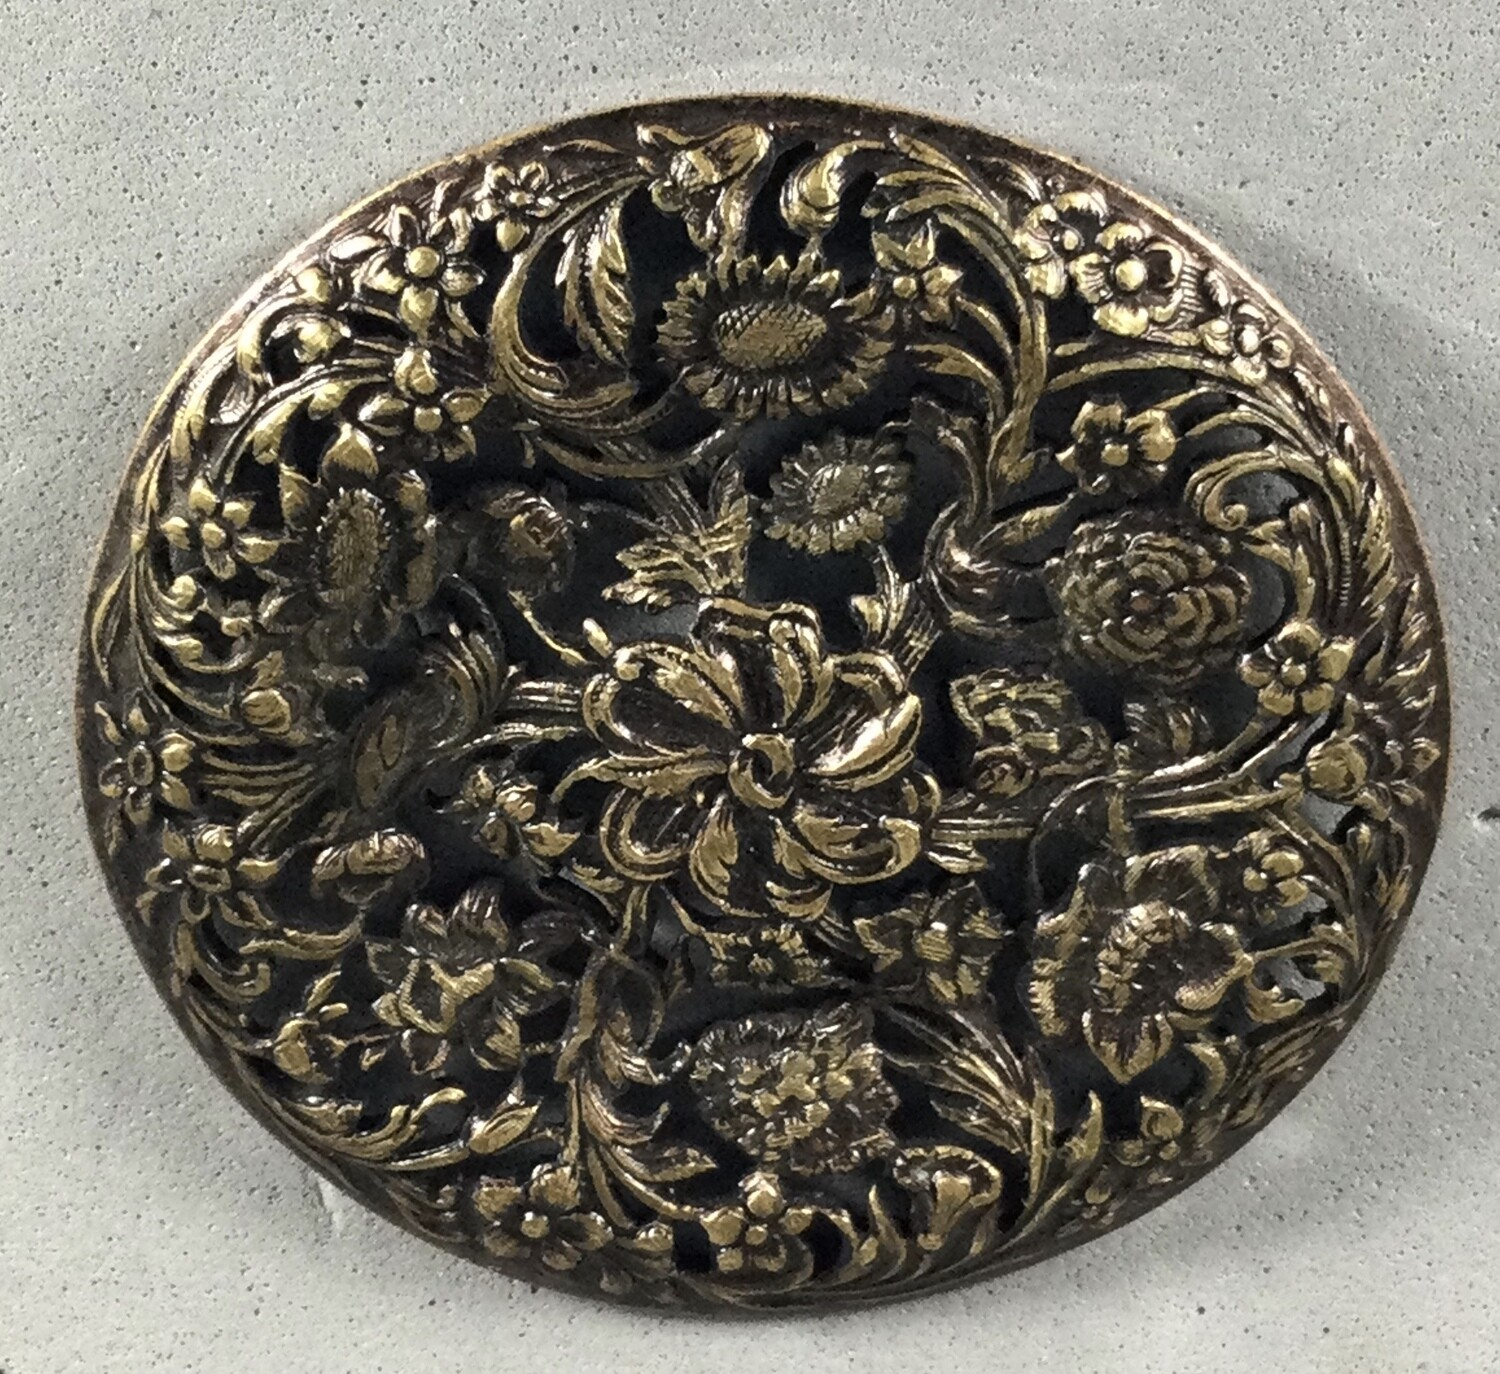 Extra Large Floral Openwork Brass